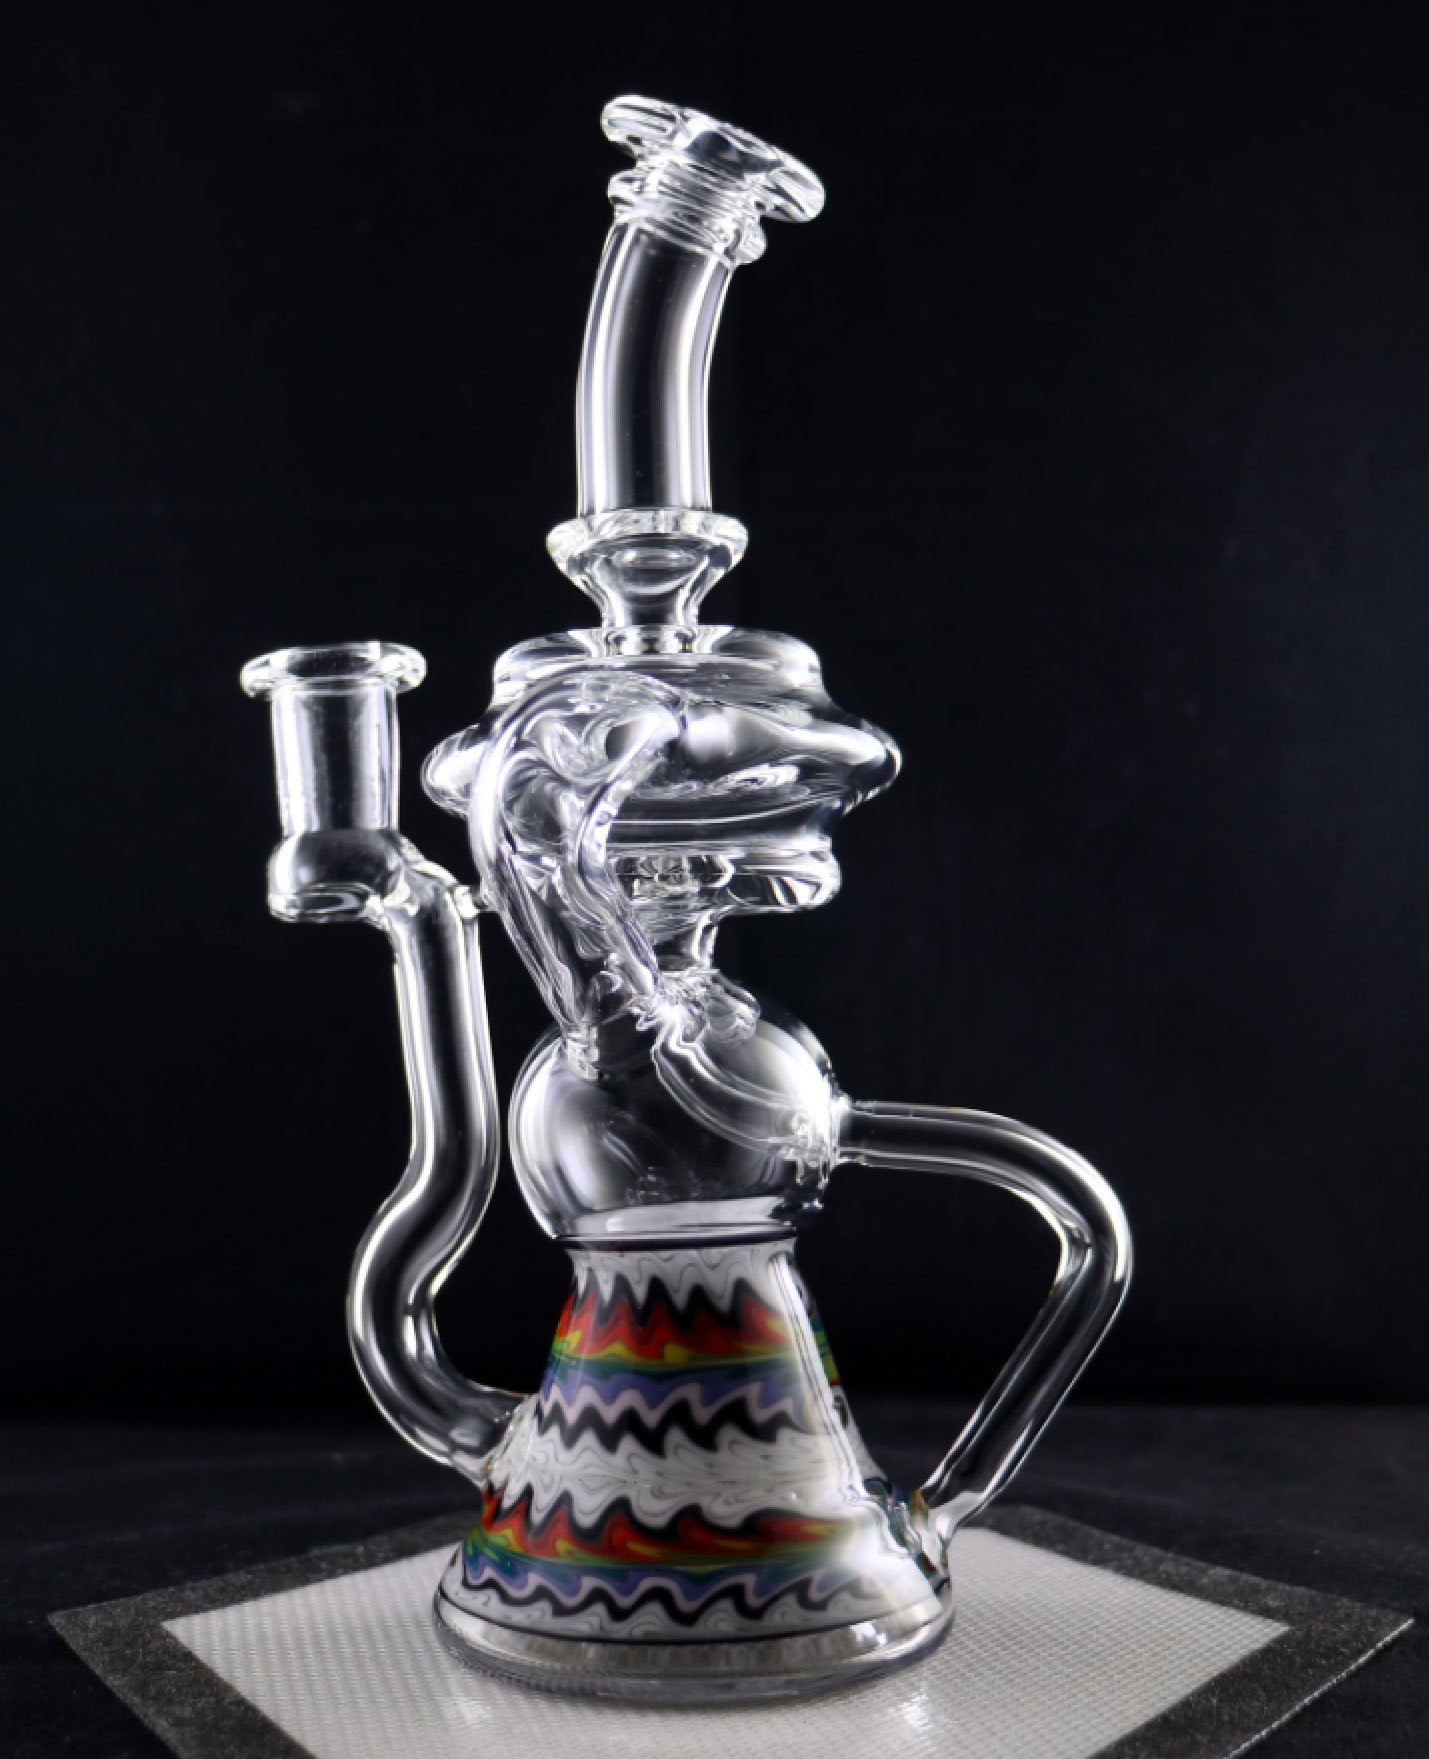 Jeff Williams – Wig Wag Klein Recycler